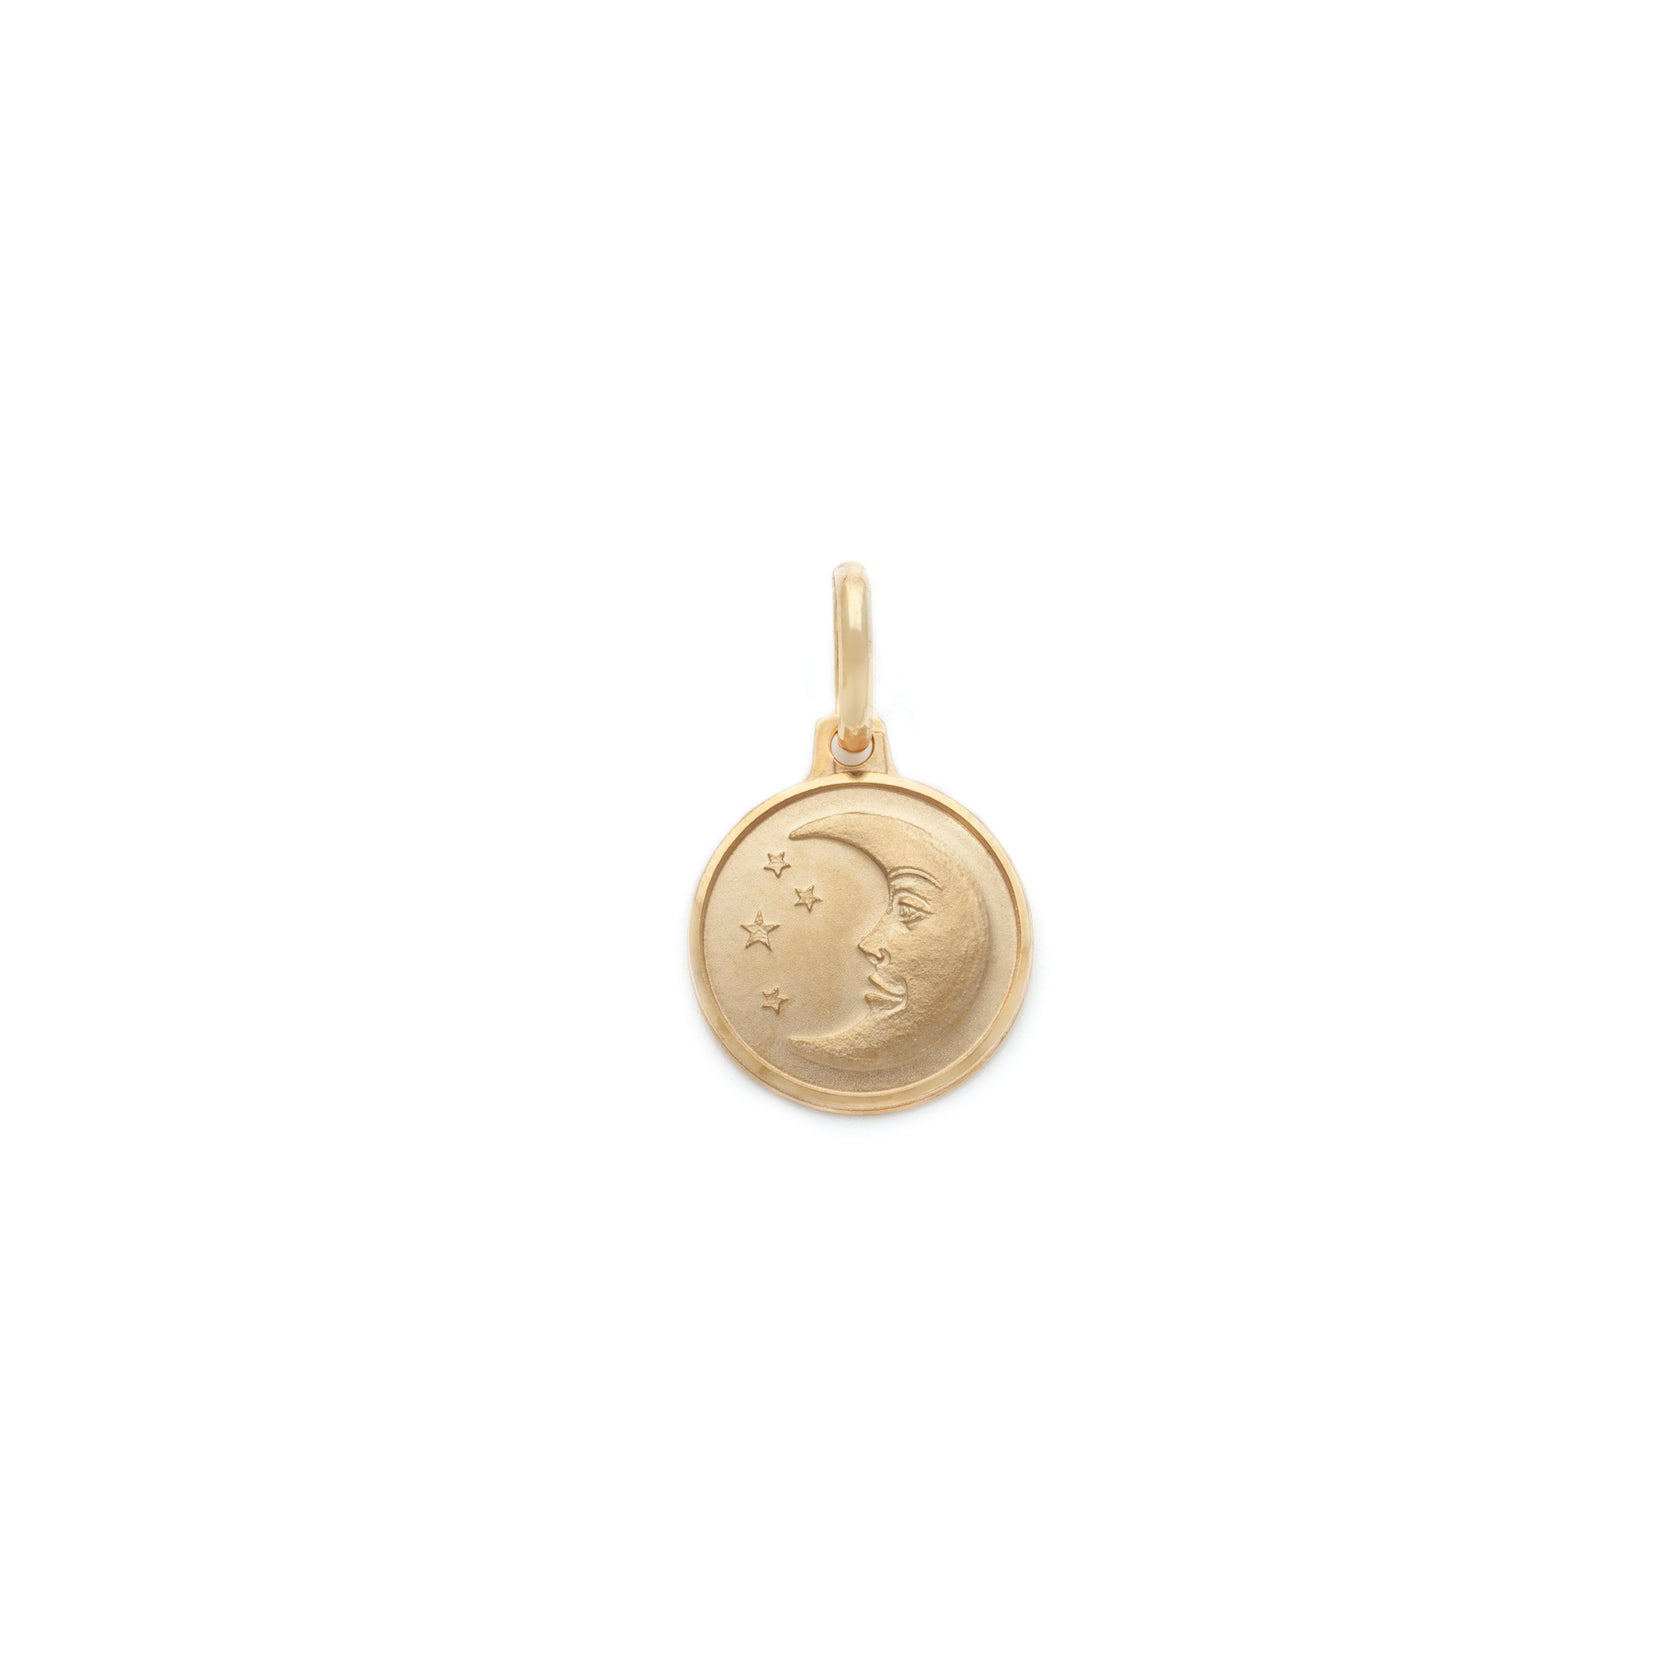 Mini Moon Pendant - 10k Solid Gold